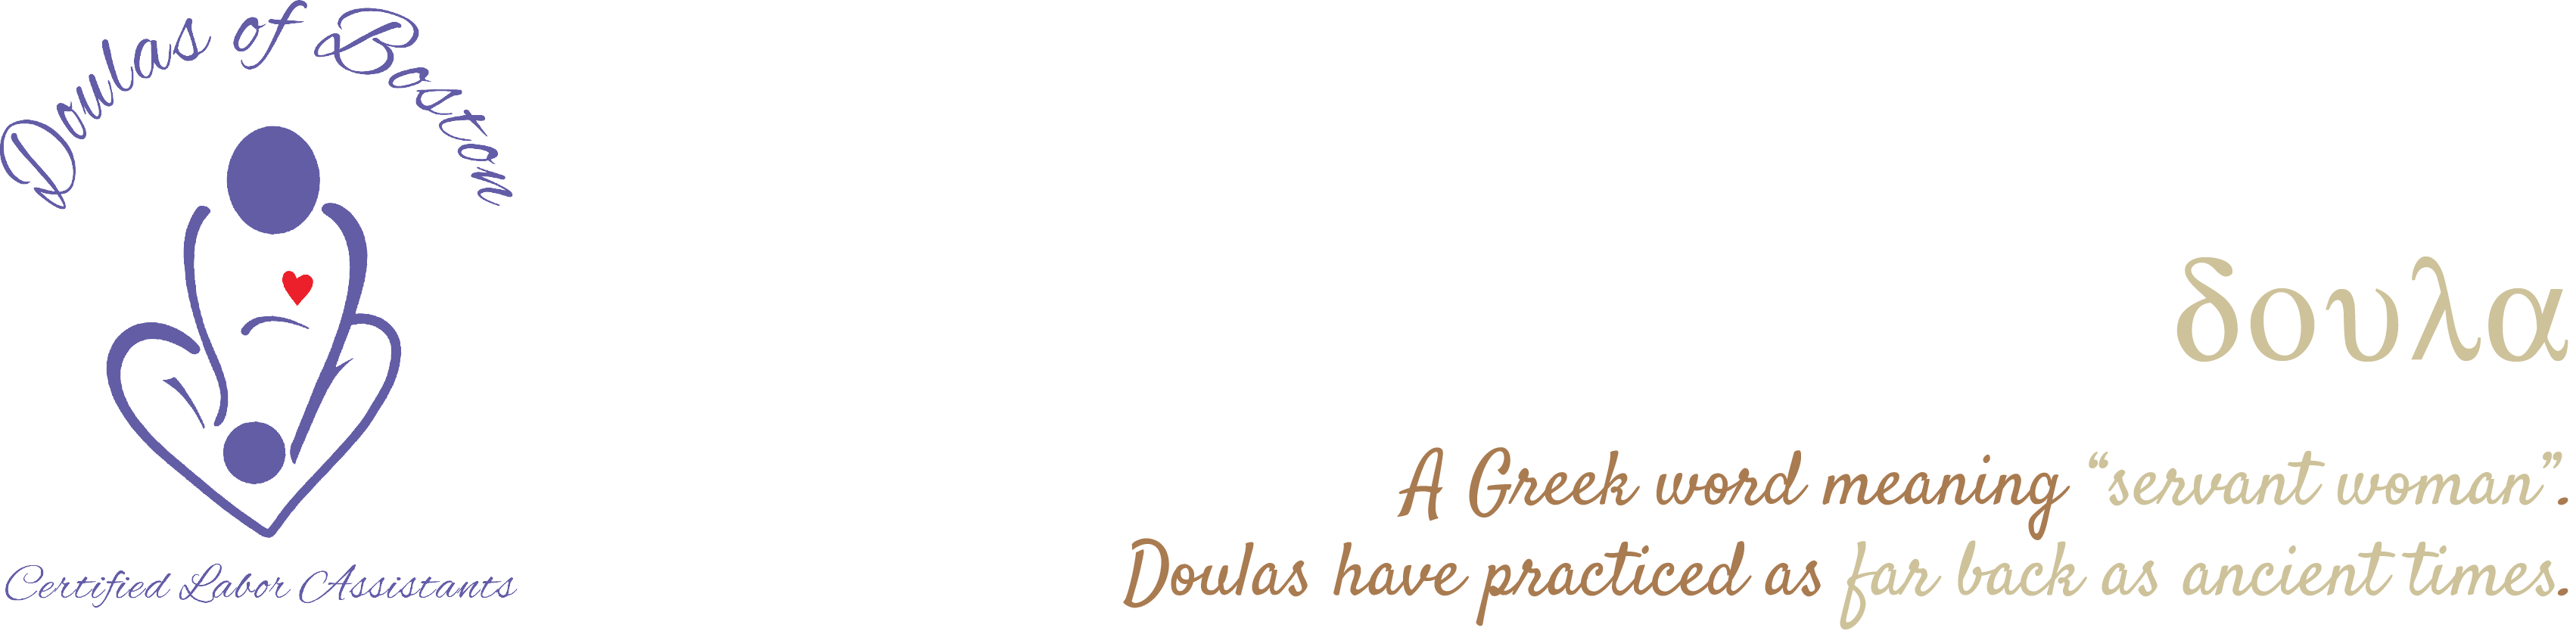 Doula Services in Boston - Doulas of Boston